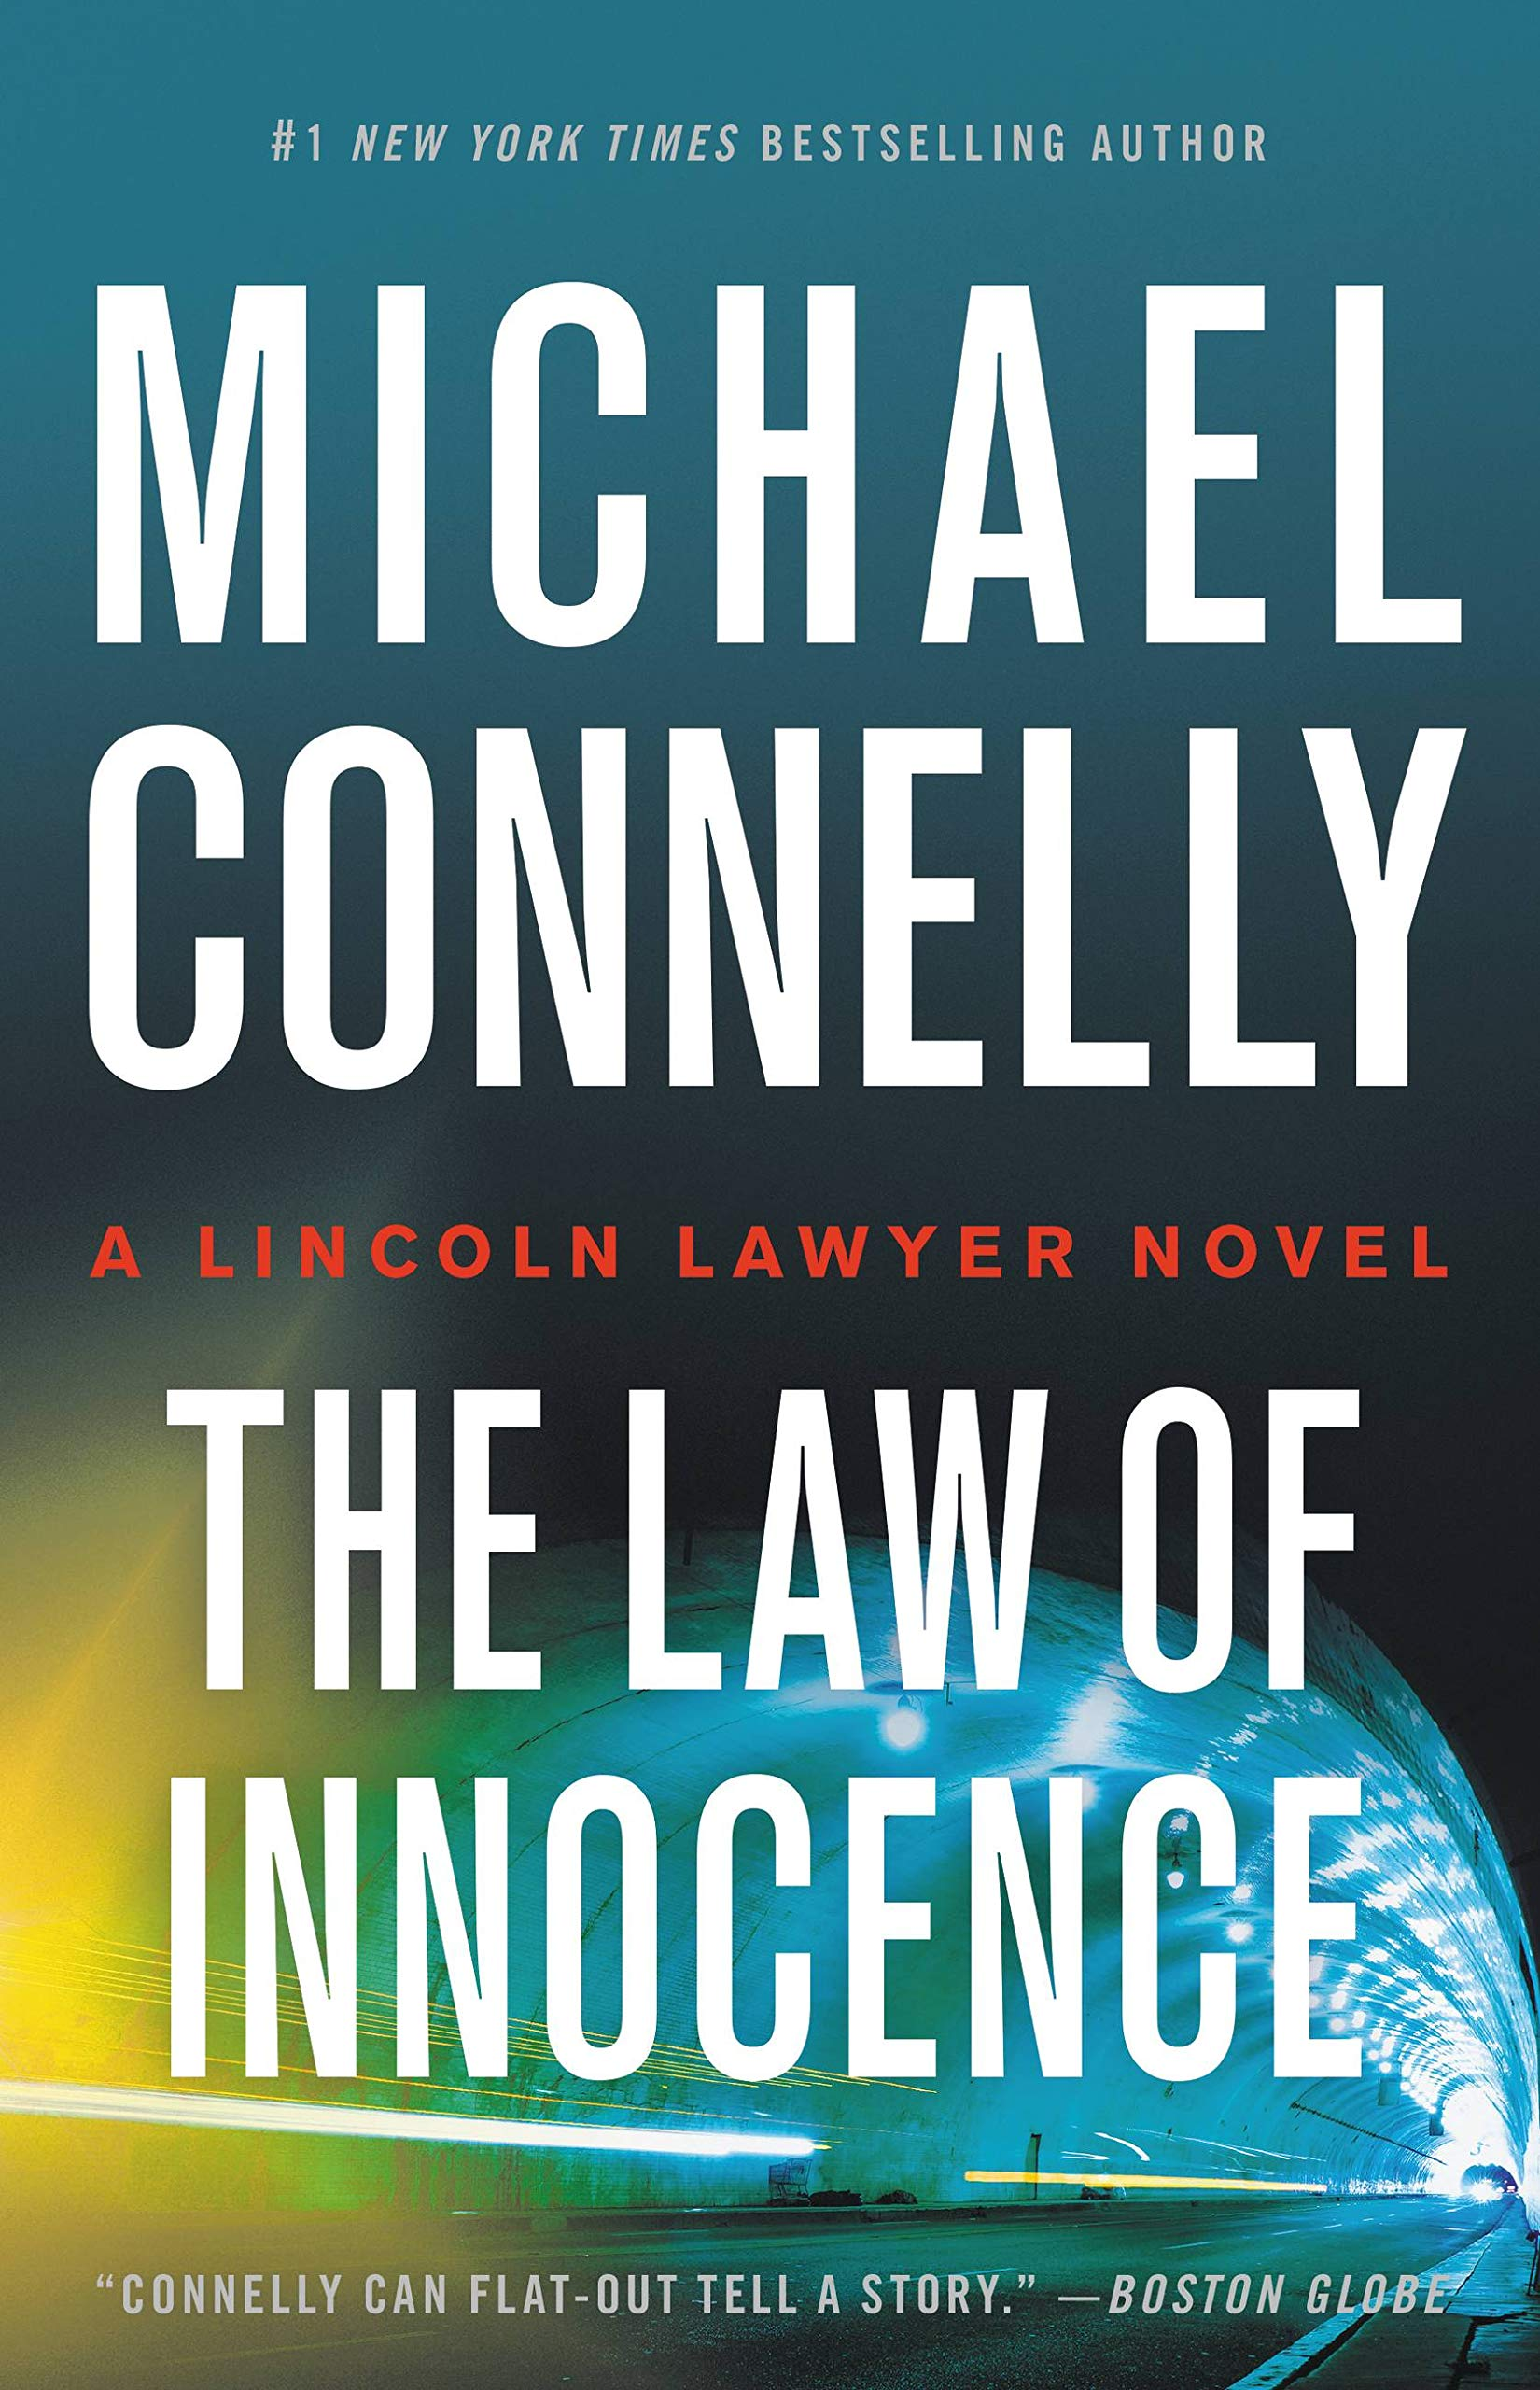 Cover image of The Law of Innocence by Michael Connelly